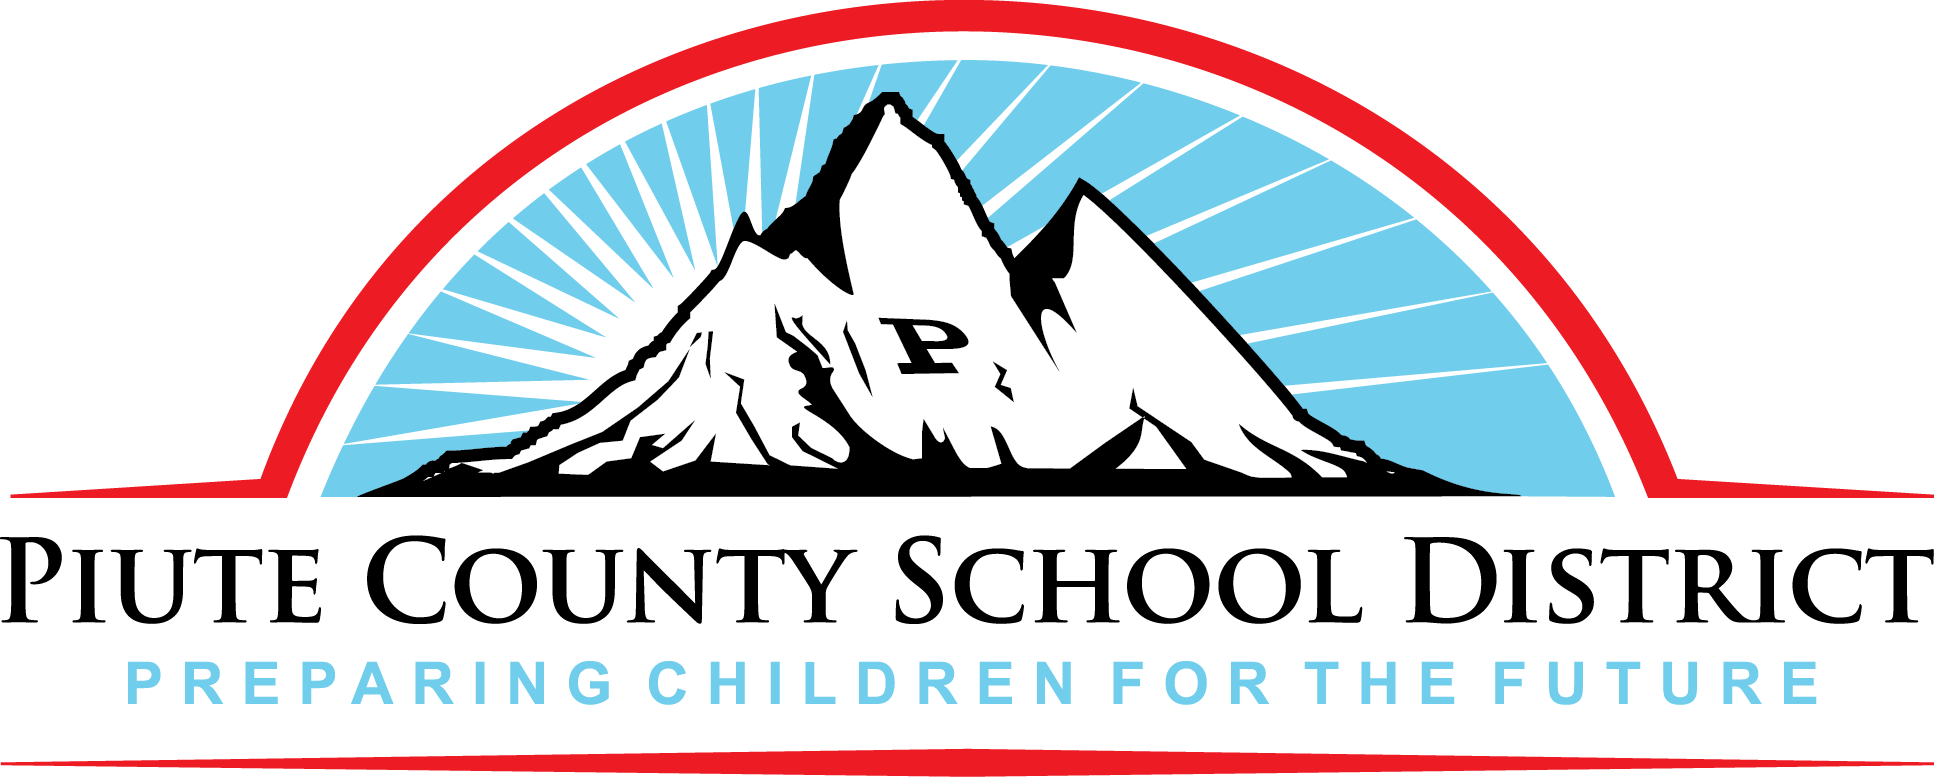 piute county school district 2